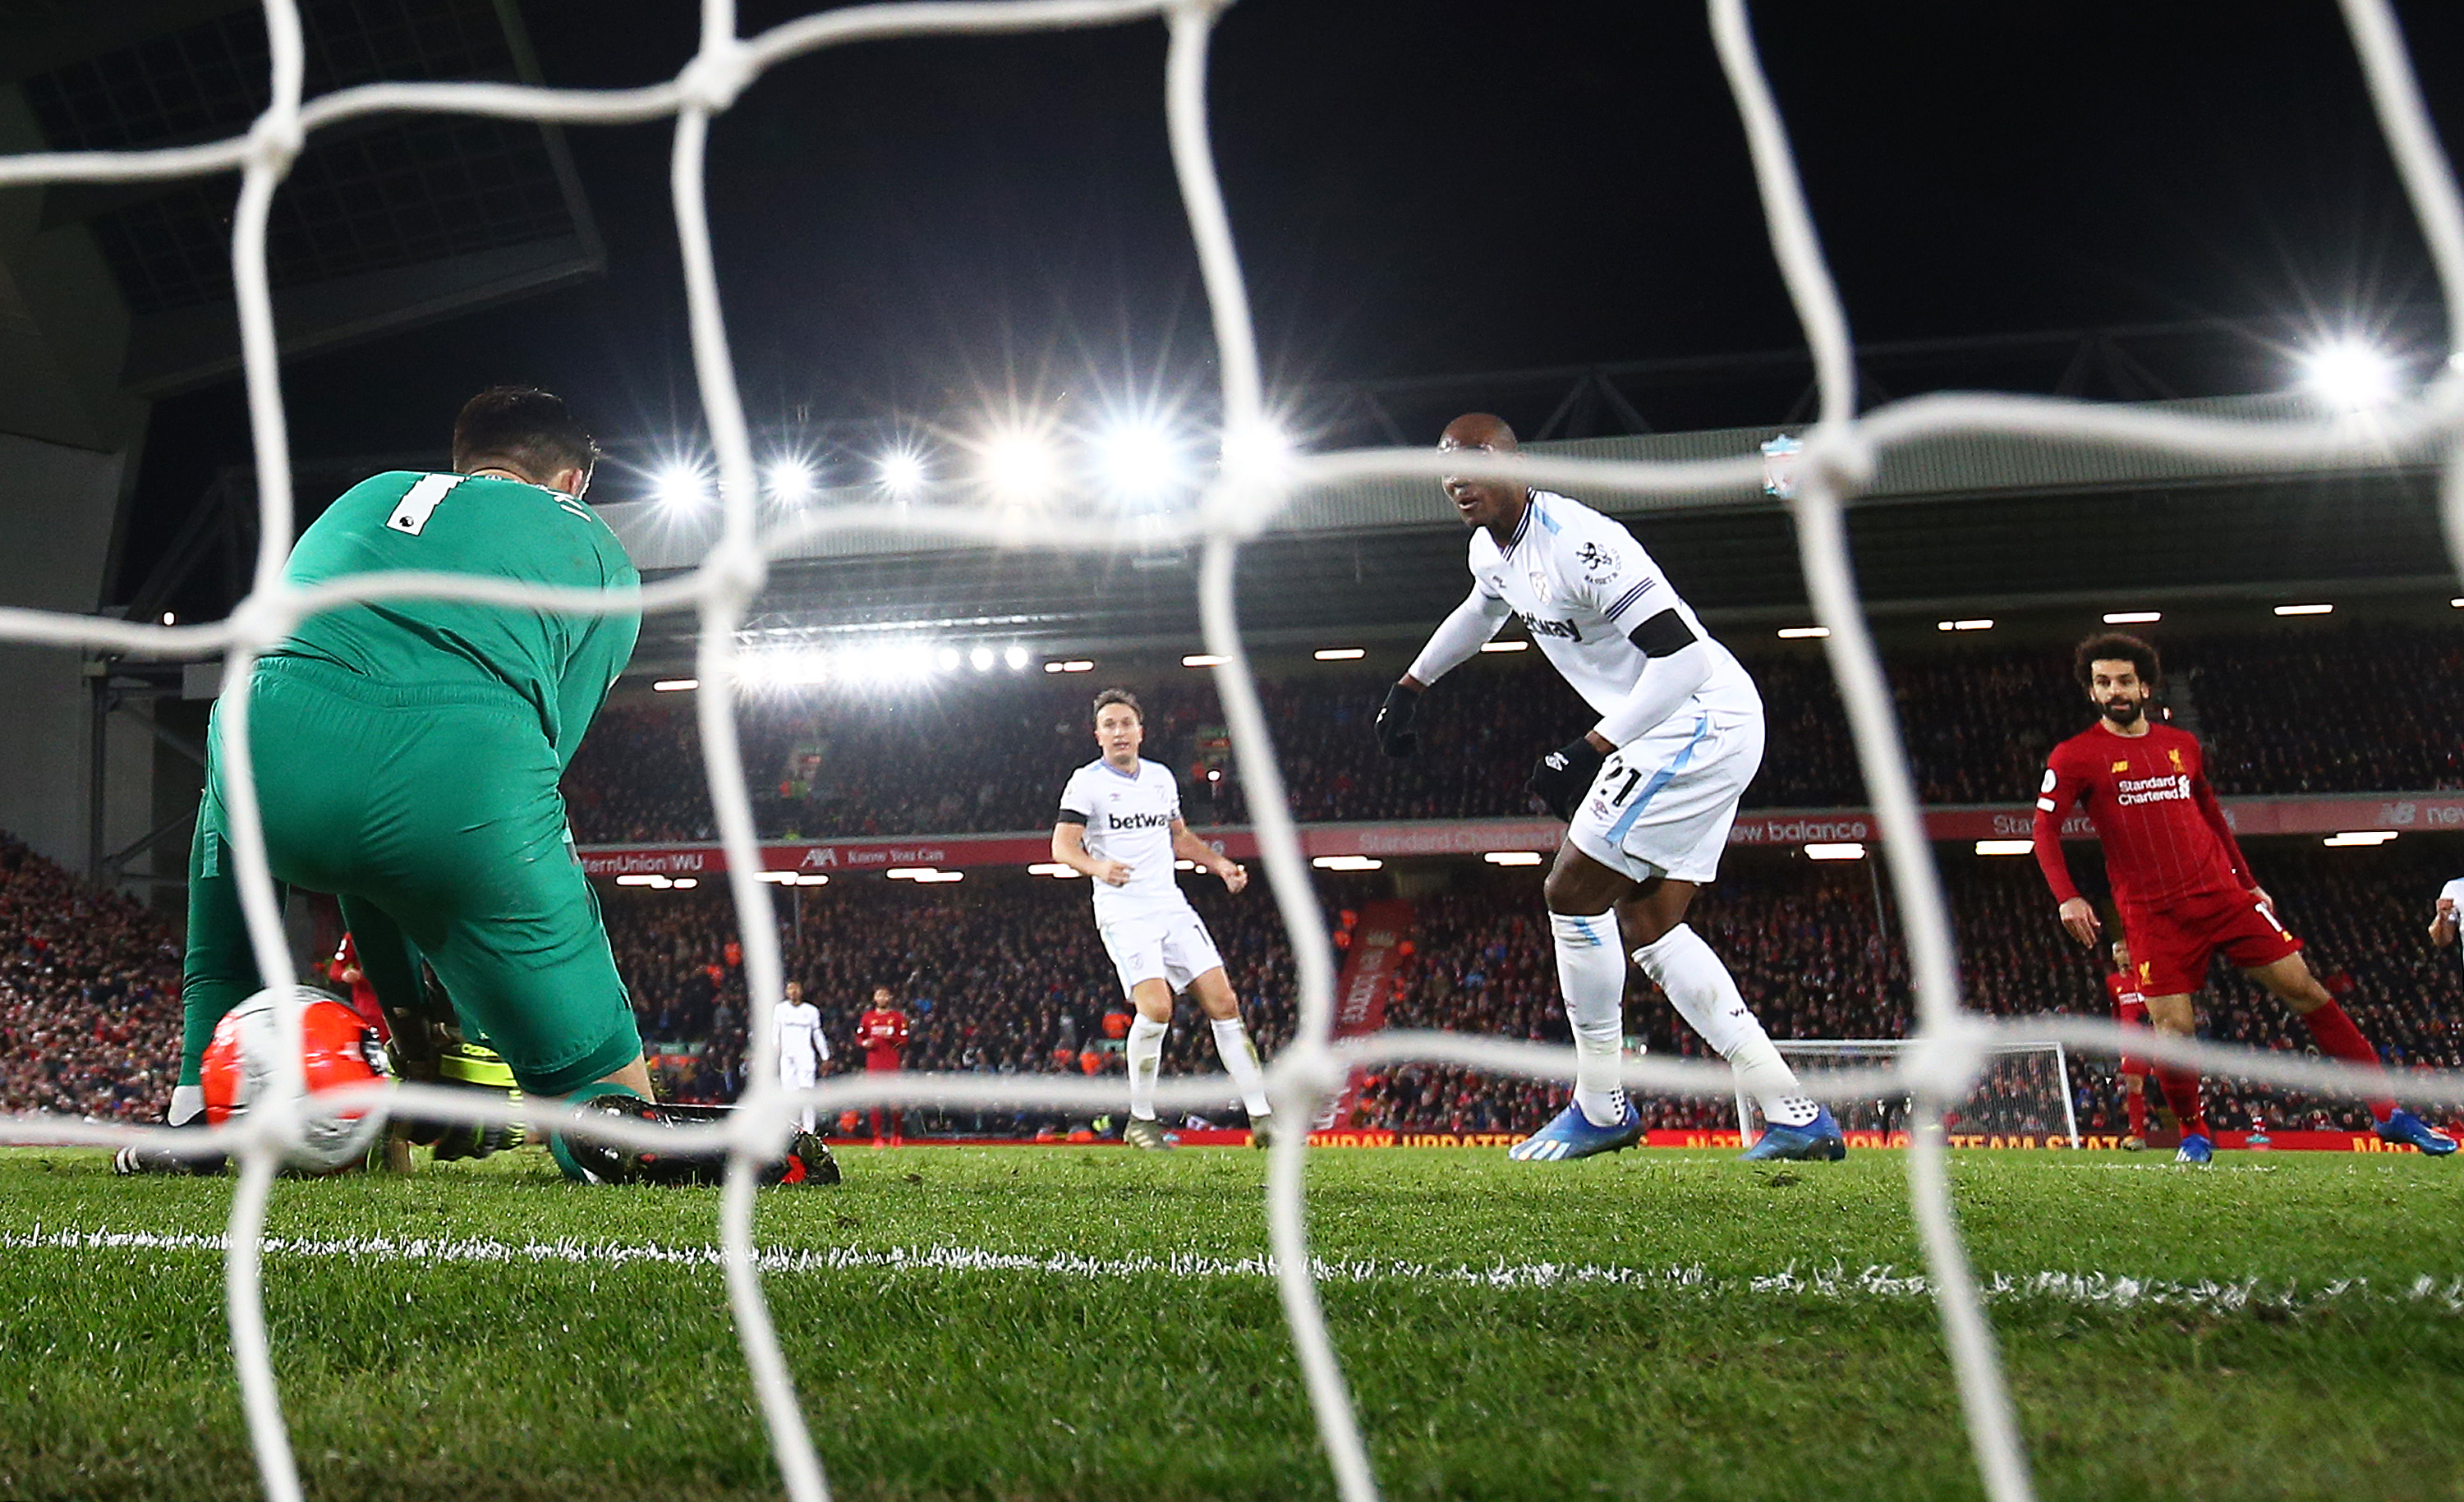 West Ham concede the equaliser against Liverpool